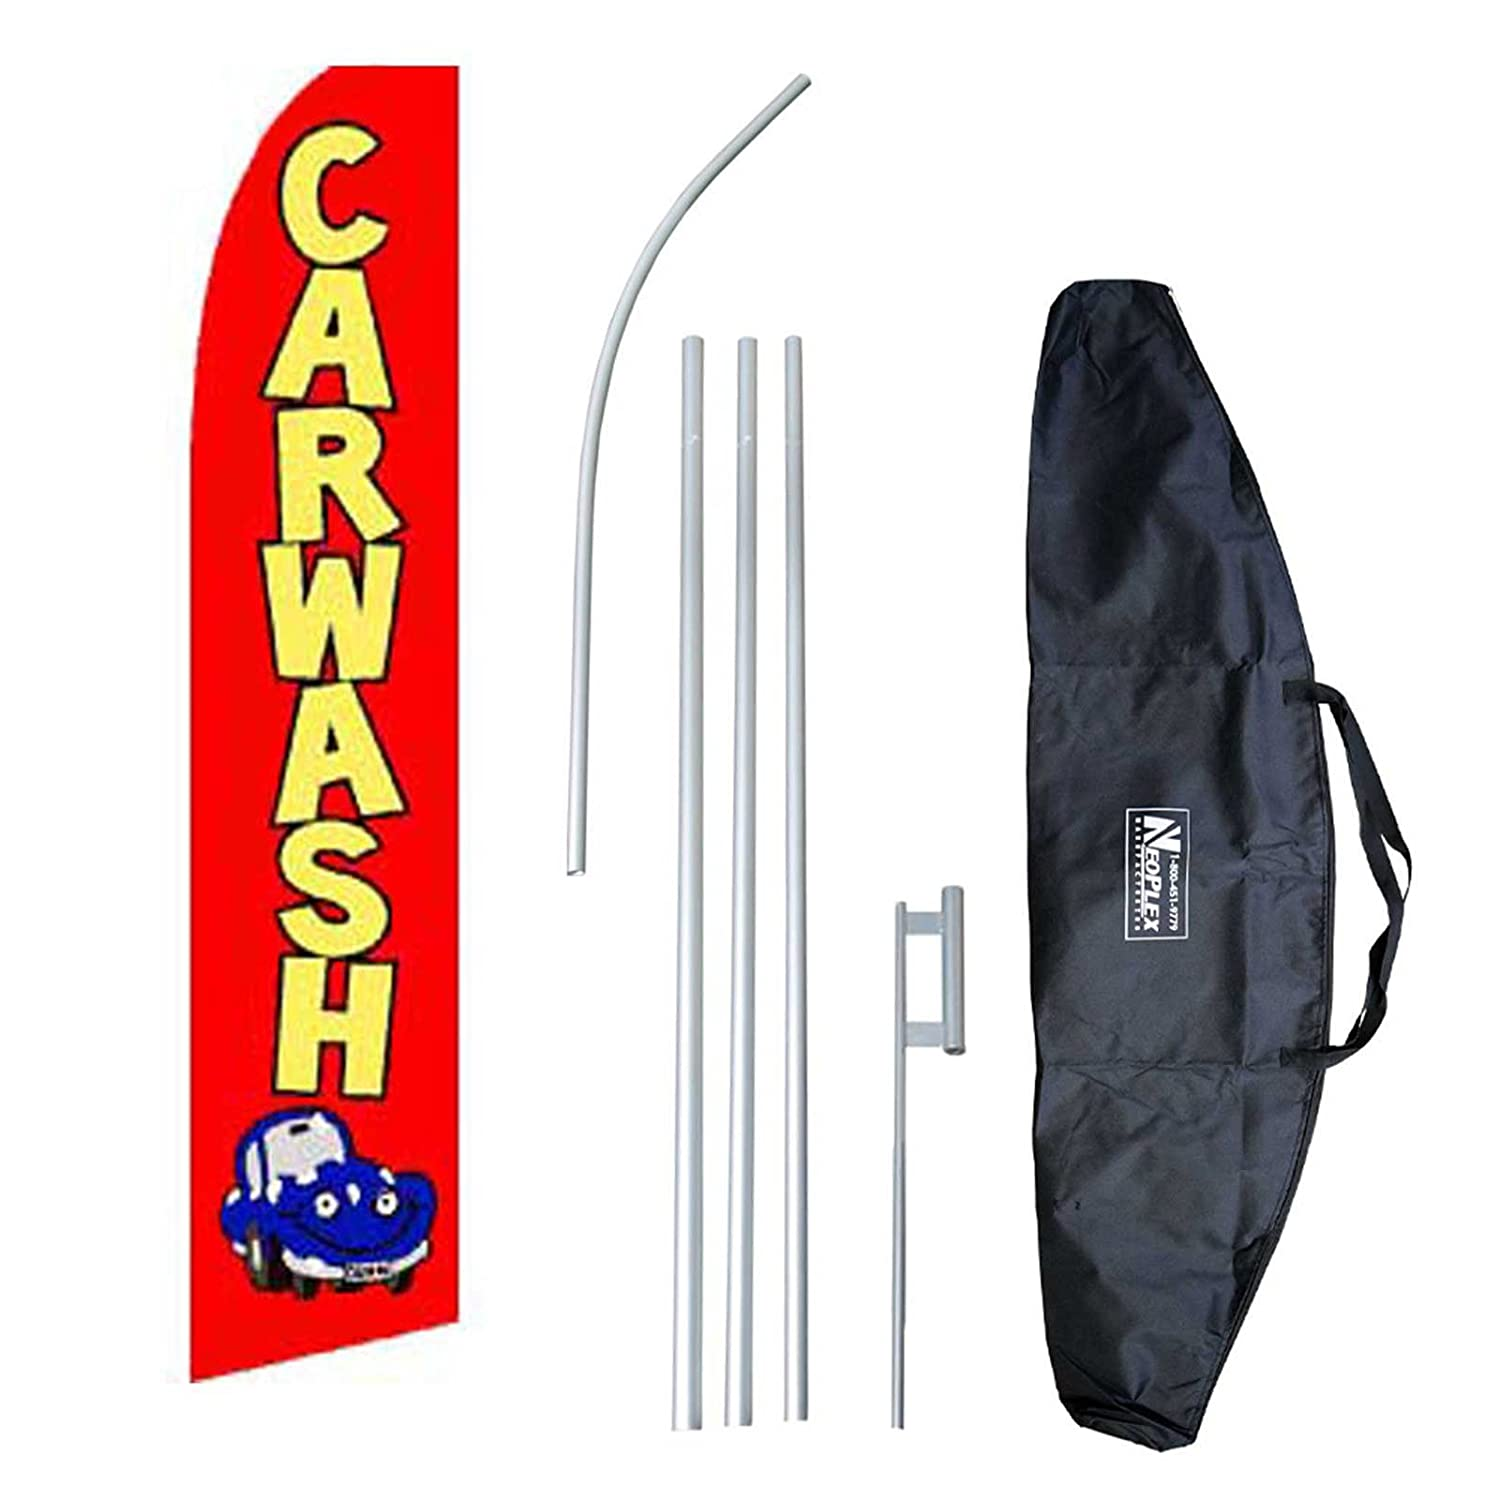 """Car Wash"" 12-foot Swooper Feather Flag and Case Complete Set...includes 12-foot Flag, 15-foot Pole, Ground Spike, and Carrying/Storage Case"